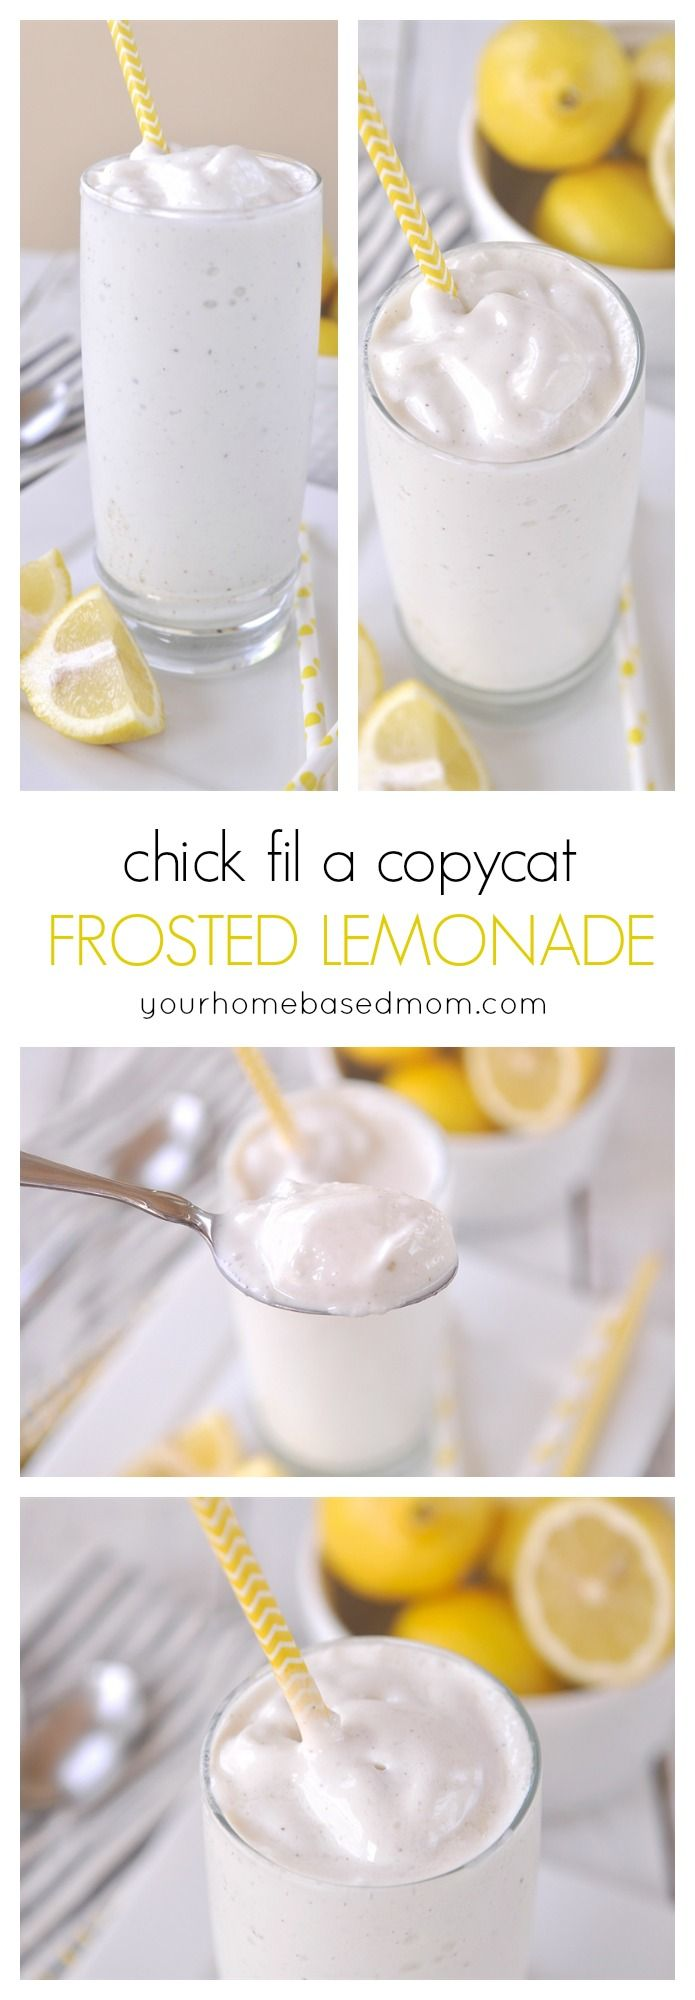 Enjoy a Chick fil A Copycat Frosted Lemonade on a warm summer day! Make it at home. Looks like a delicious treat!